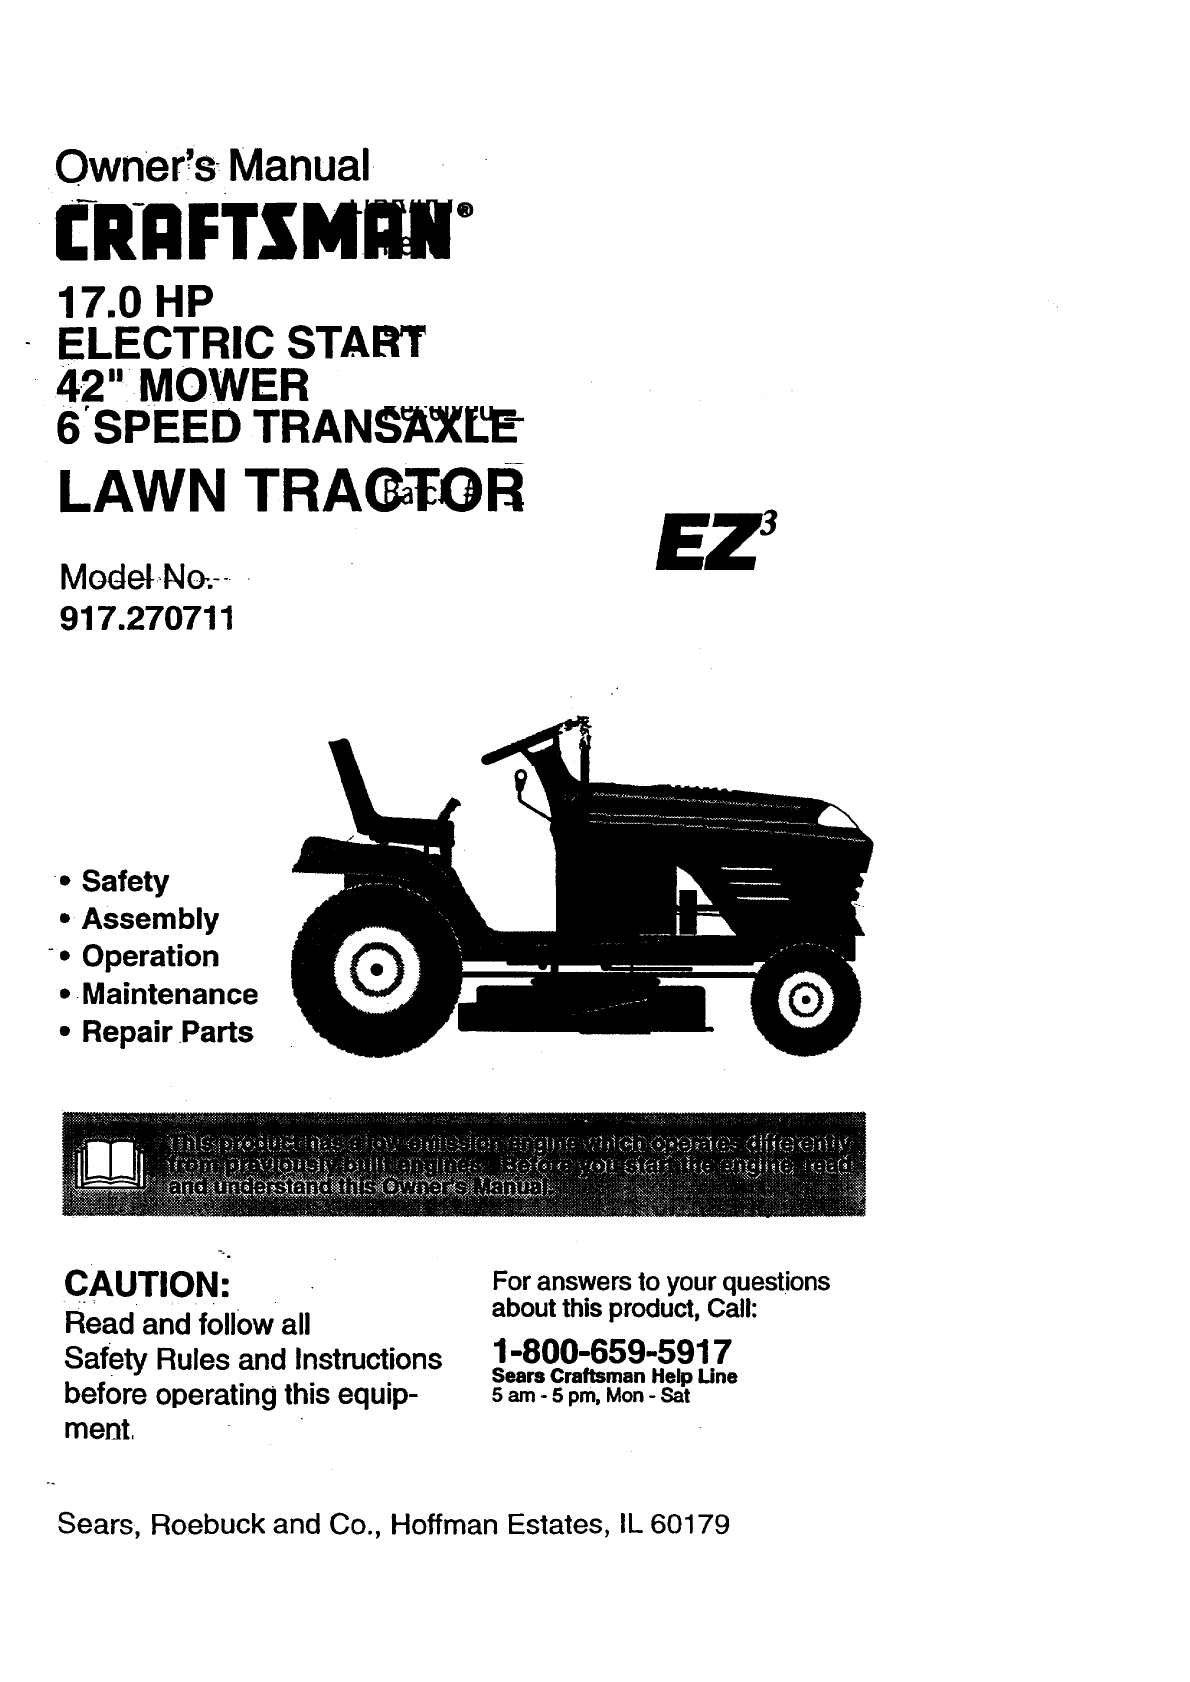 4f9bd438 eab7 46fb 9a83 b87d883133bd bg1 craftsman lawn mower 917 270711 user guide manualsonline com craftsman model 917 wiring diagram at crackthecode.co